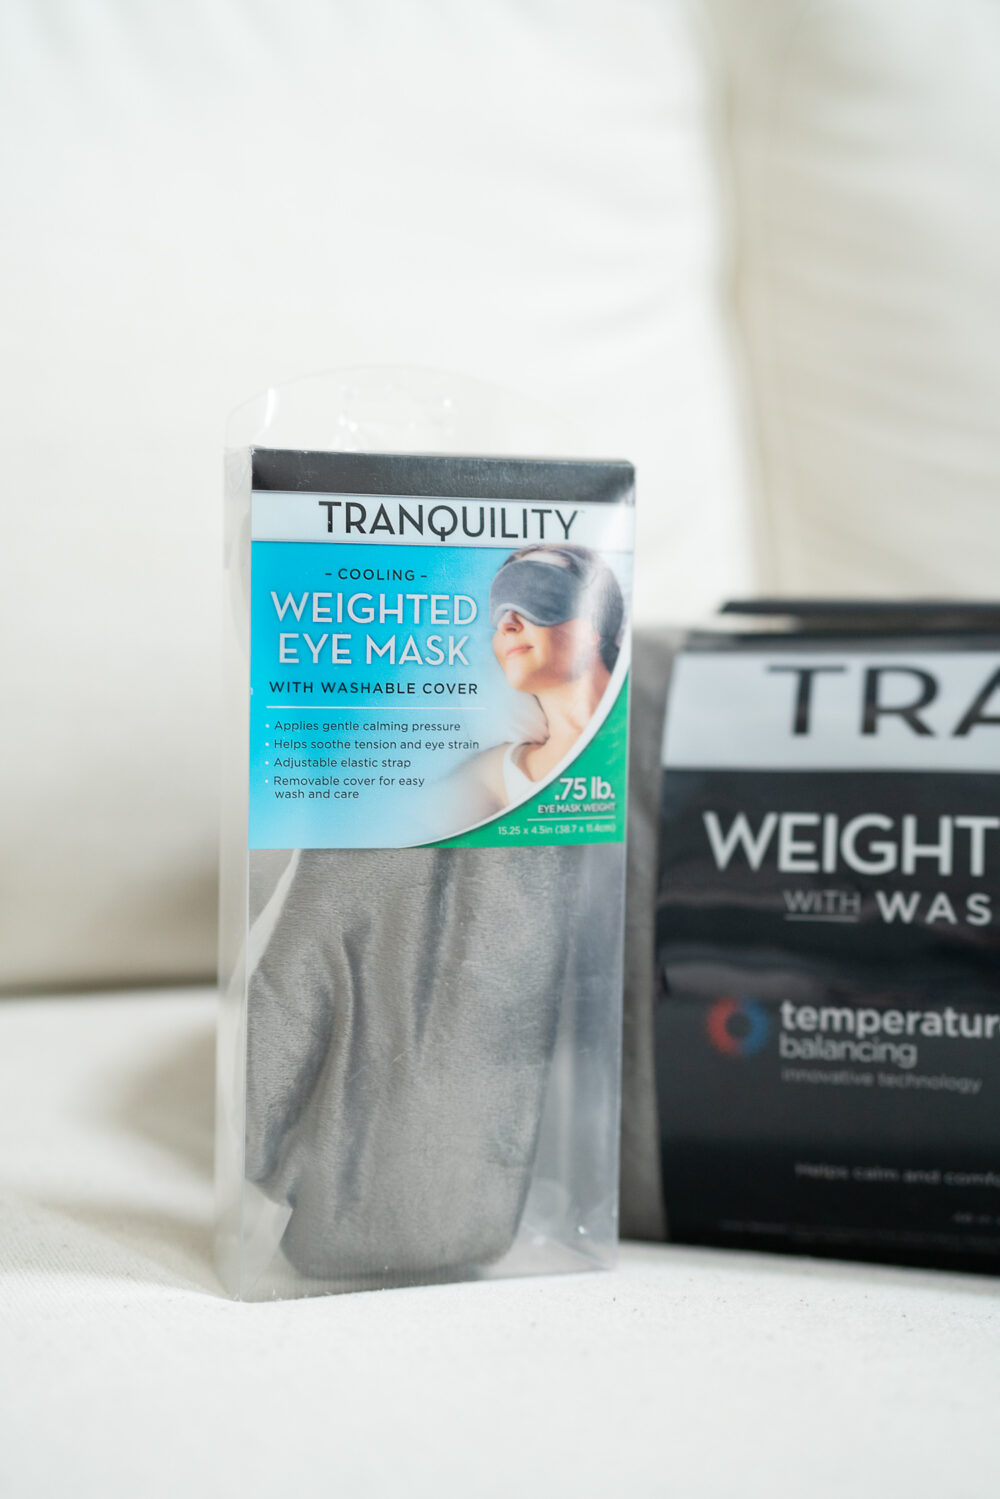 Petite Fashion and Style Blog | Tranquility Weighted Blanket | Tranquility Weighted Eye Mask